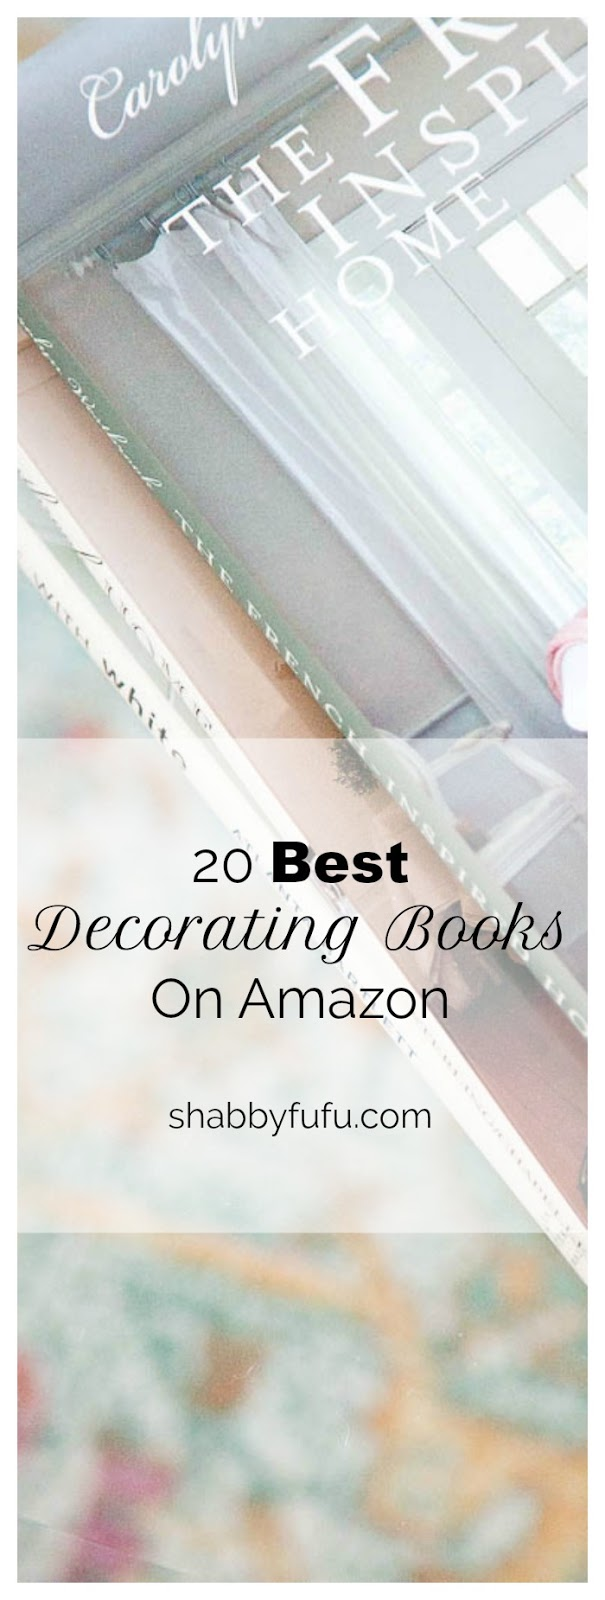 20 Beautiful Decorating Books - Gift Guide